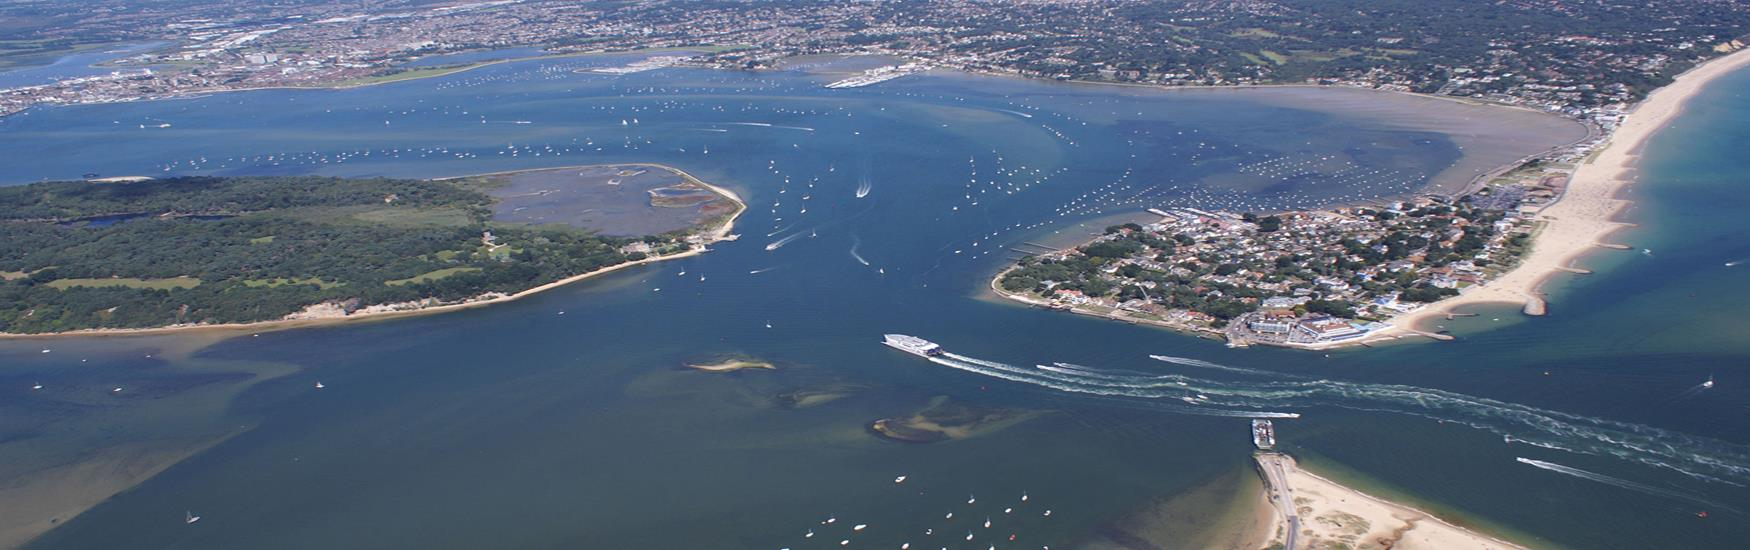 Entrance to Poole Harbour